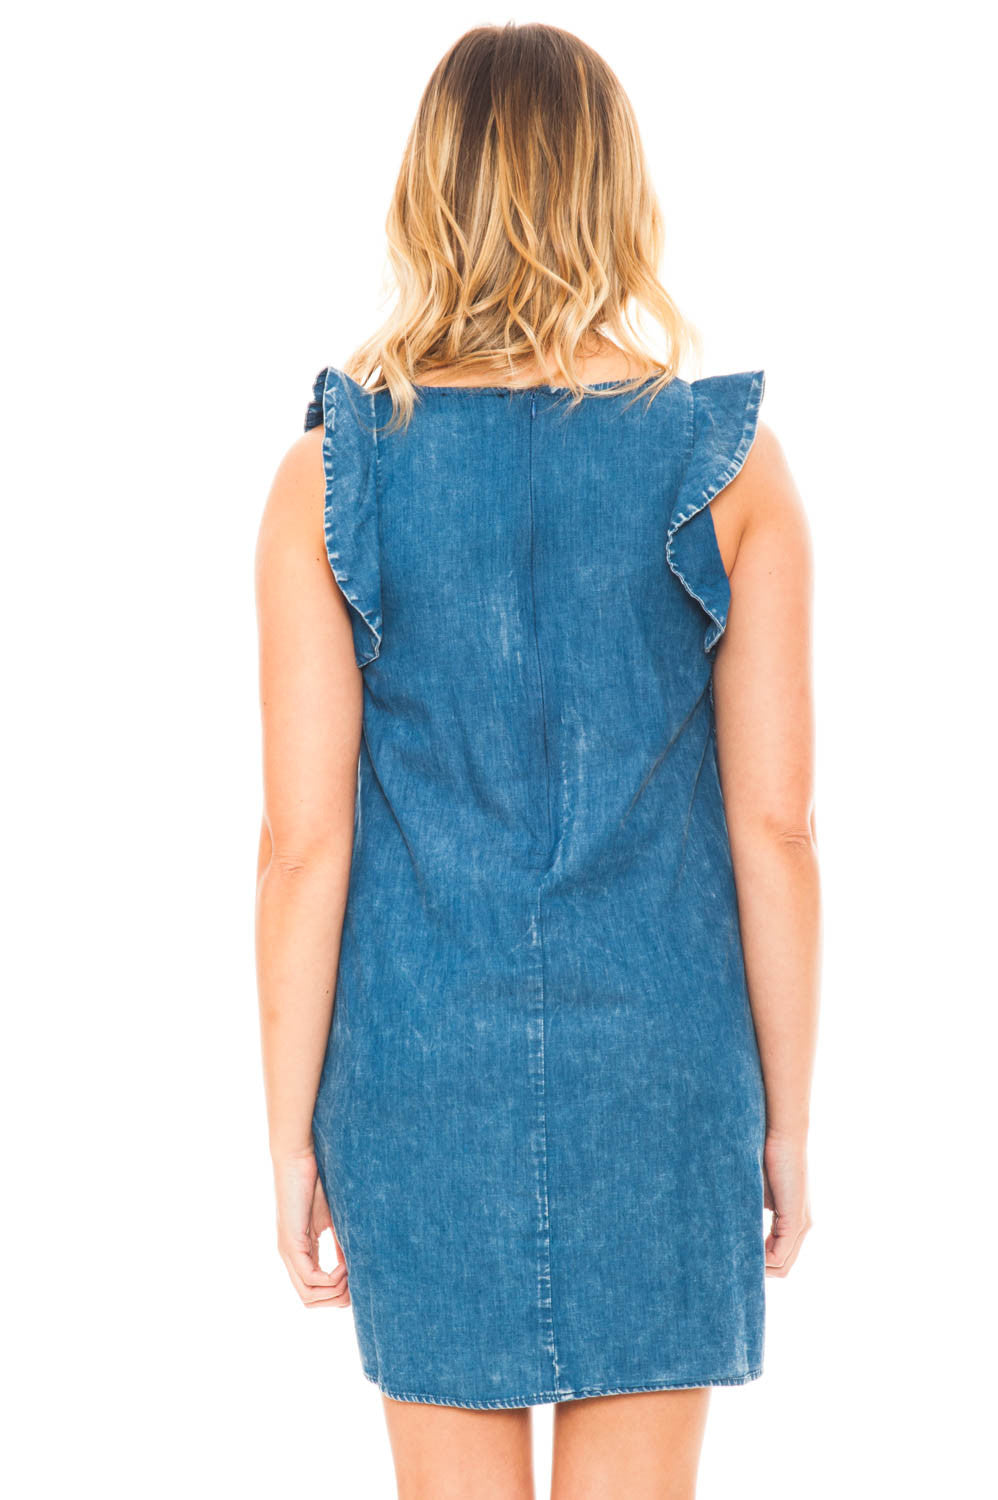 Dress - Denim Ruffled Shoulder Dress with Pockets